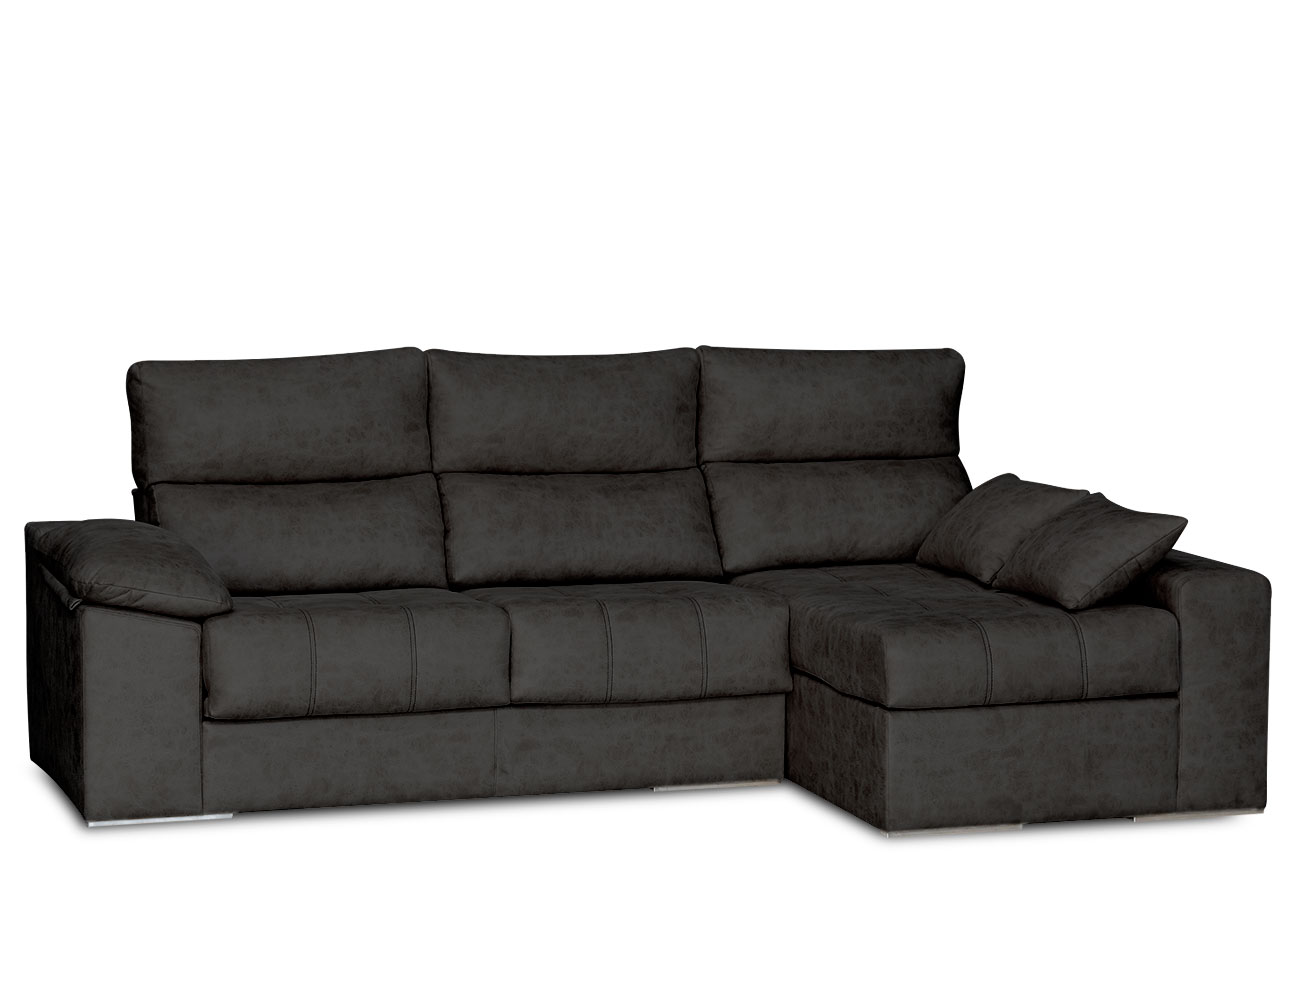 Sofa chaiselongue surf negro 2